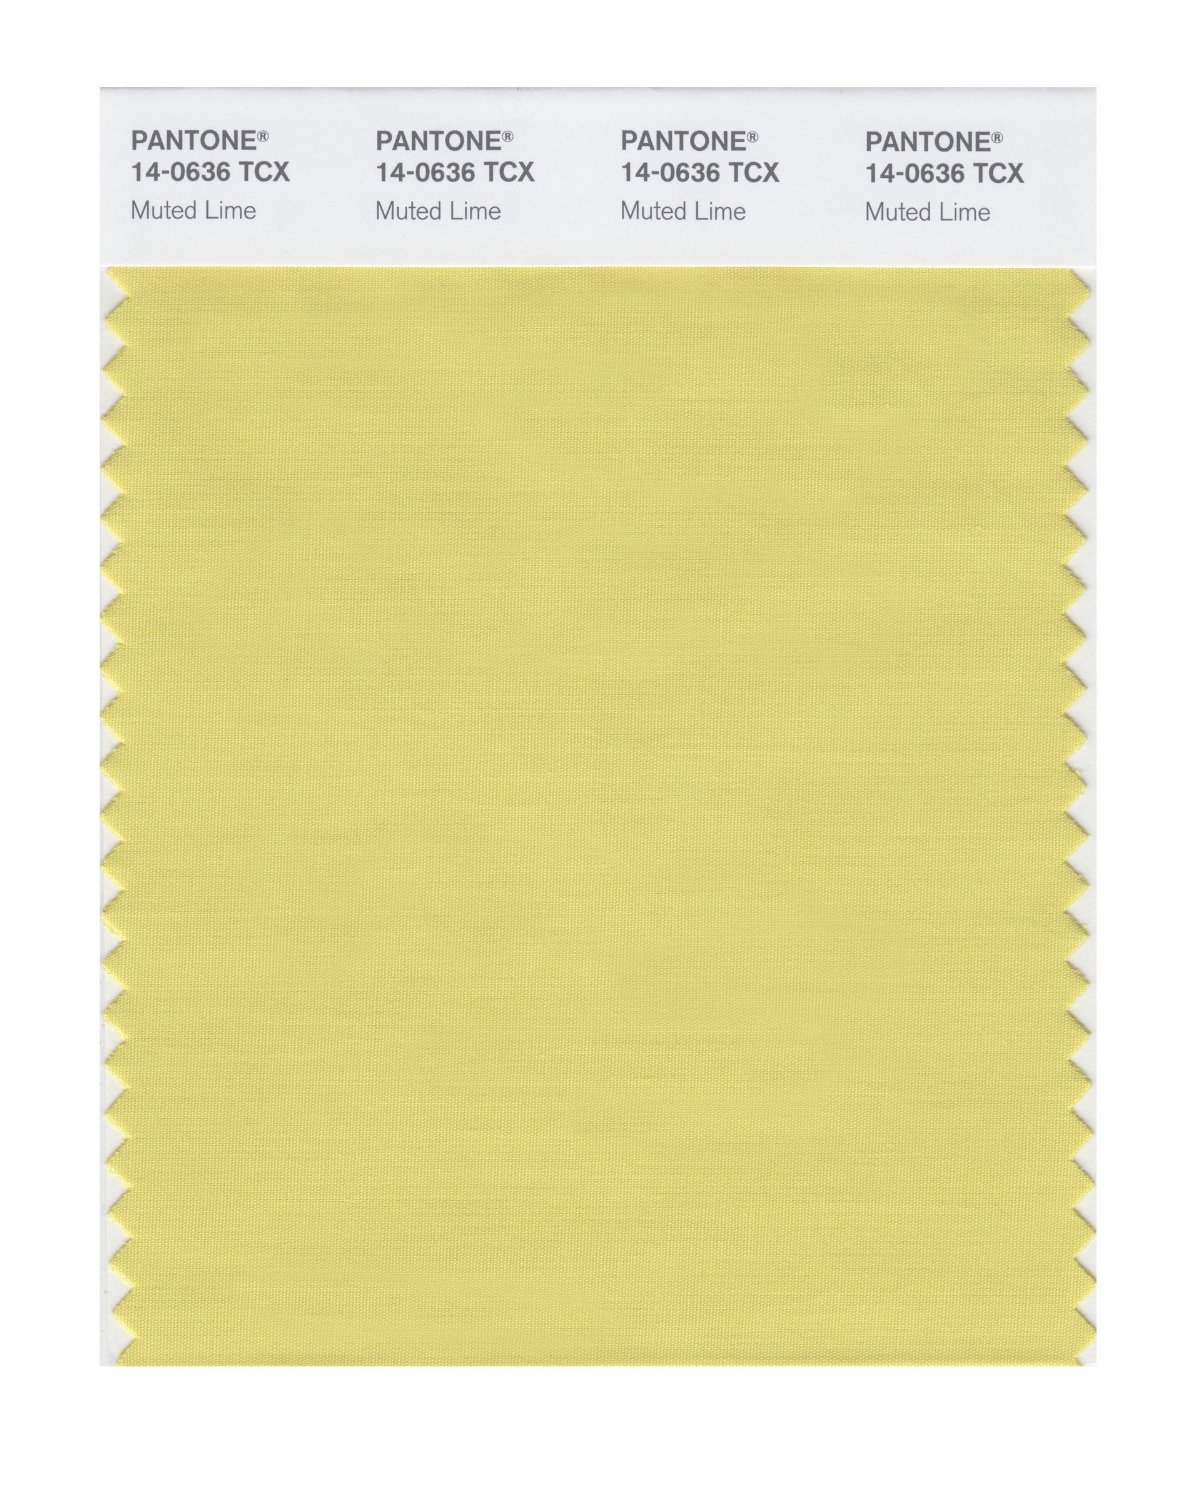 Pantone Smart Swatch 14-0636 Muted Lime